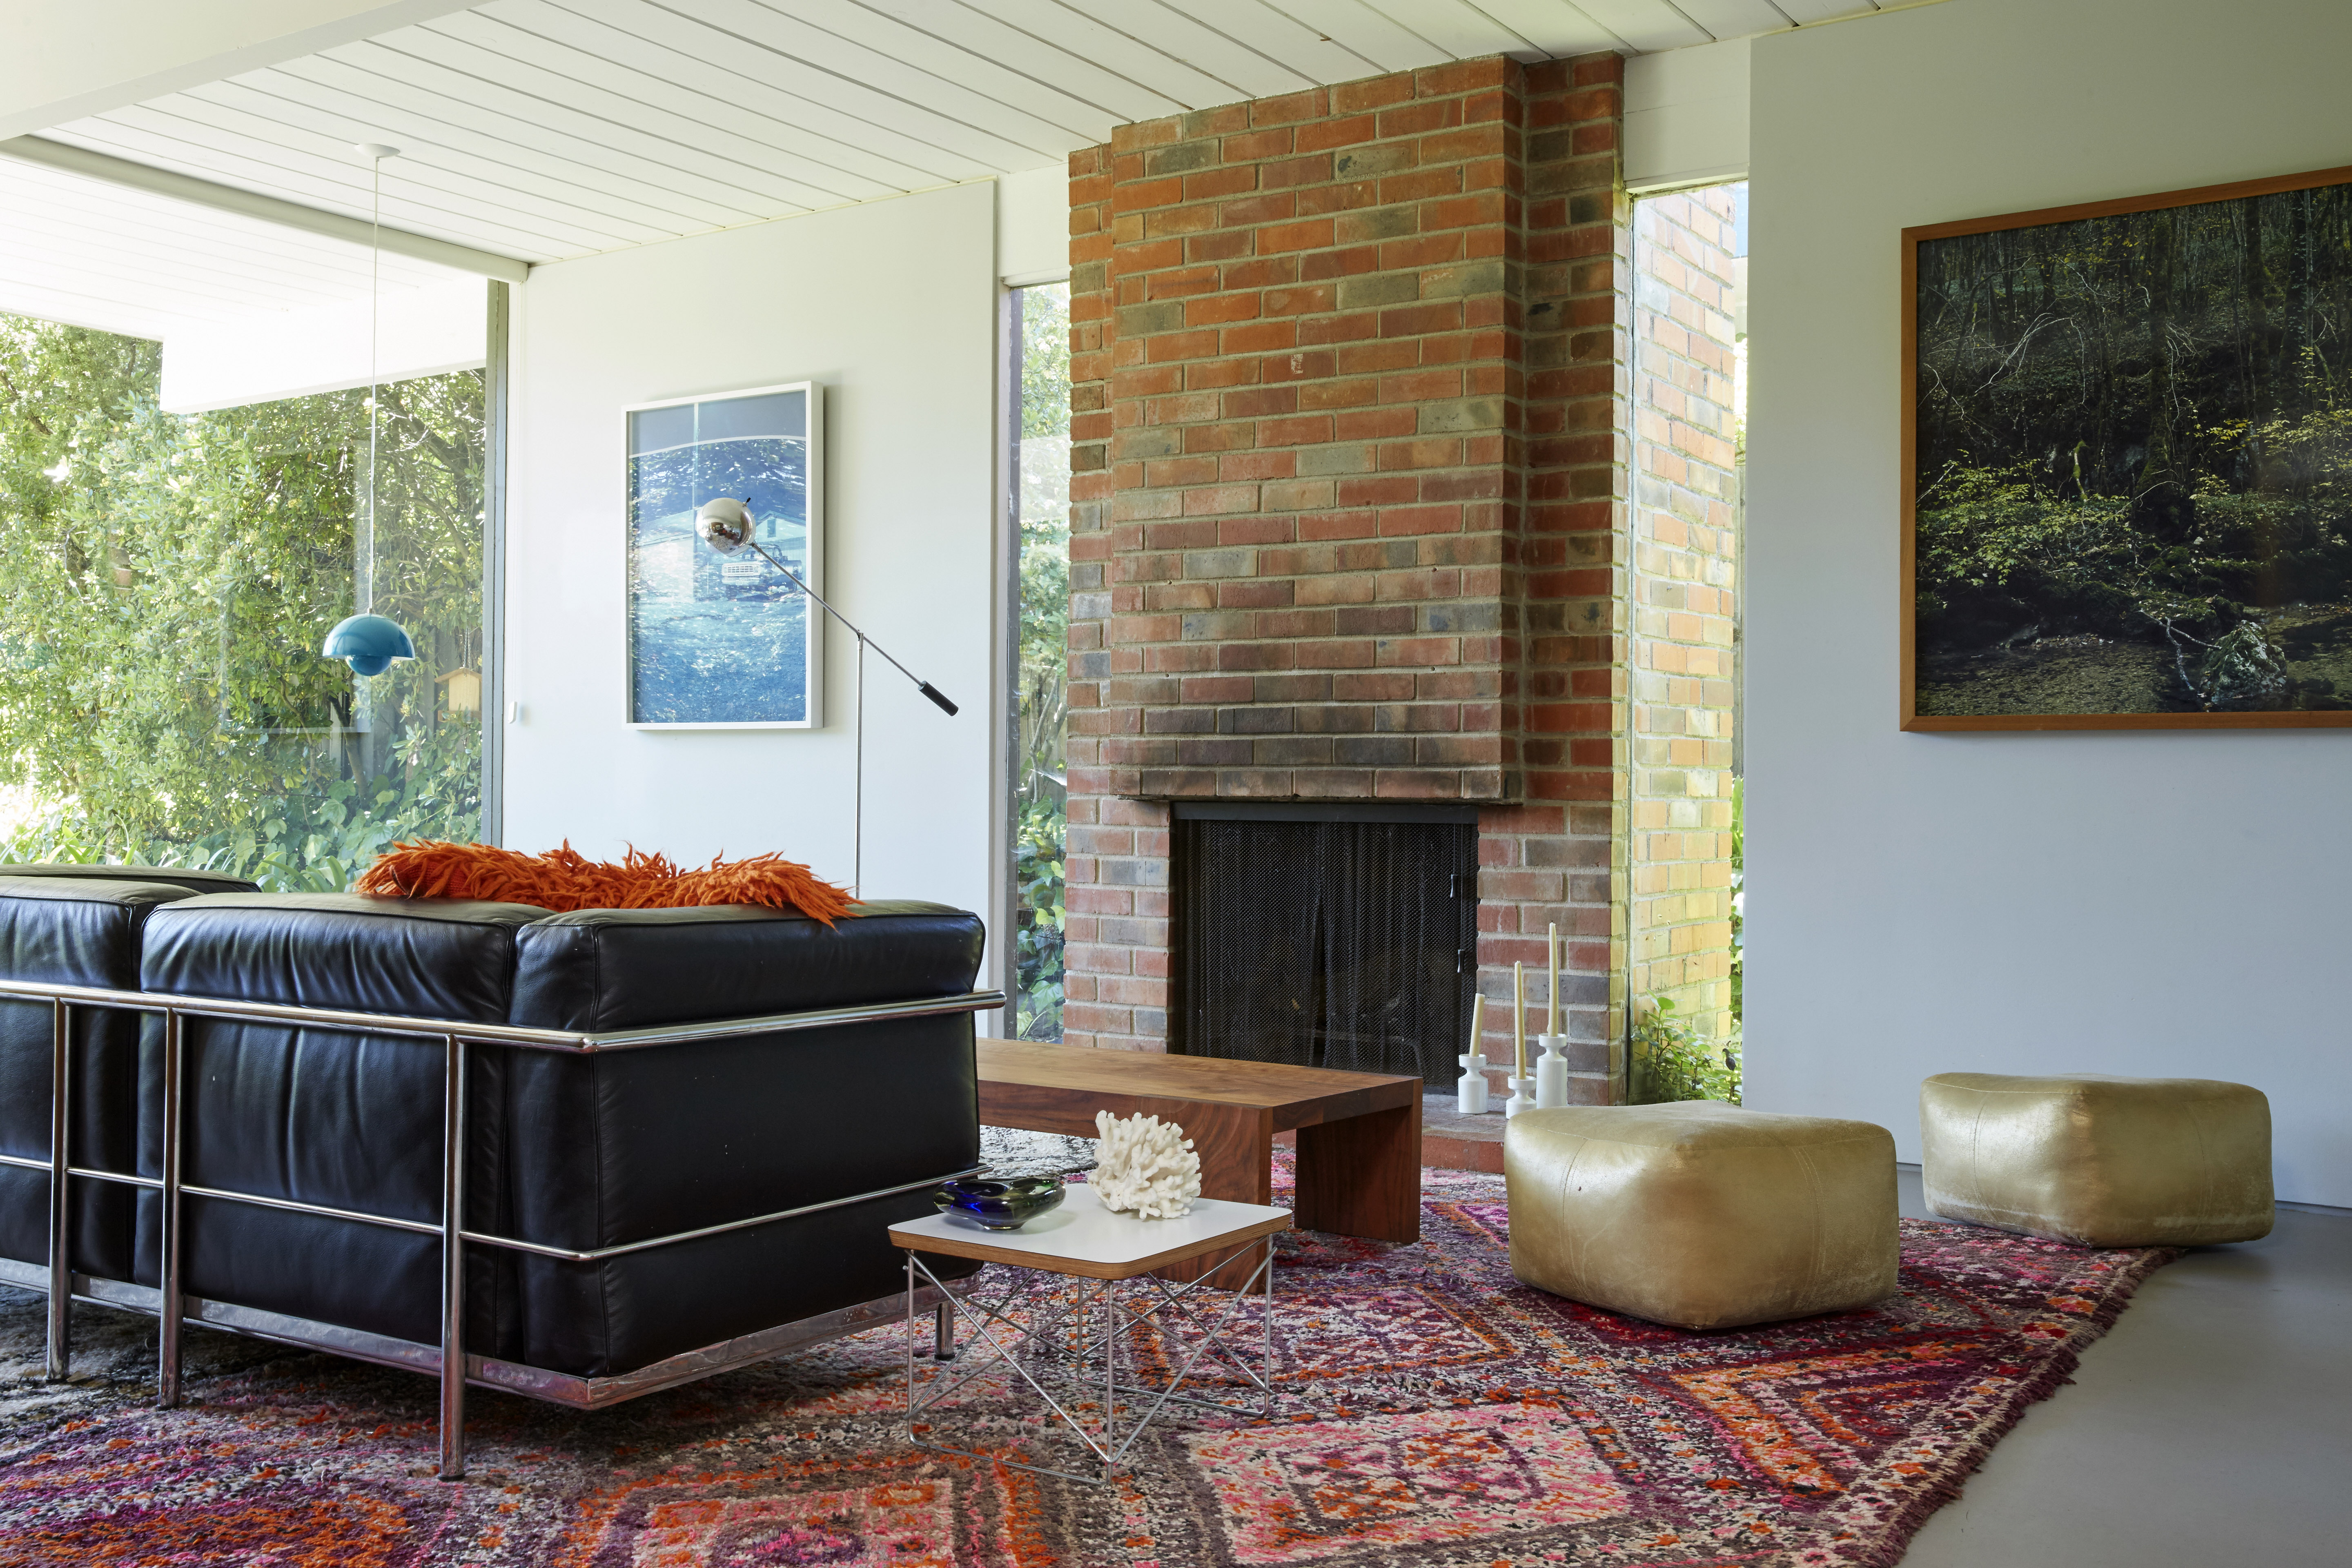 A Classic Eichler Home Steps Into the 21st Century